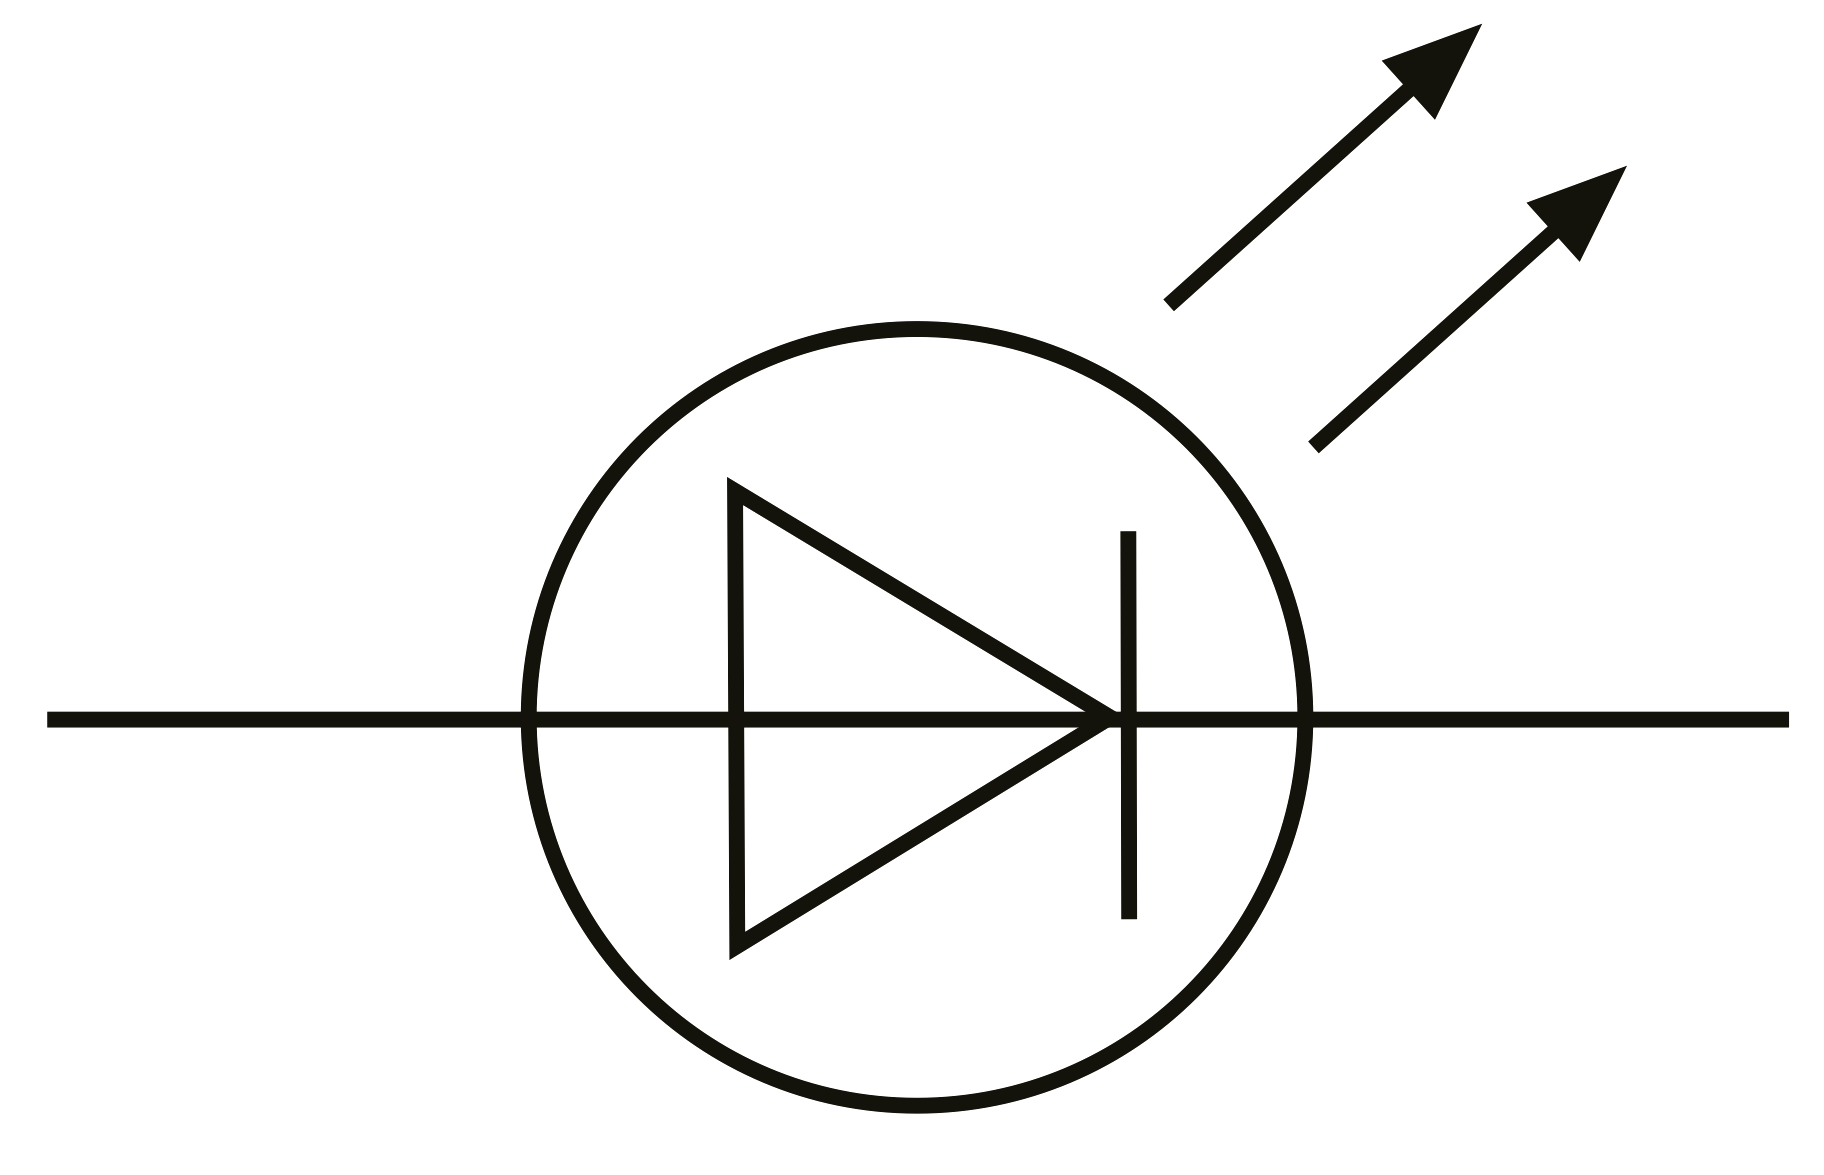 Schematic Symbol For Light Emitting Diode on electronic light emitting diode